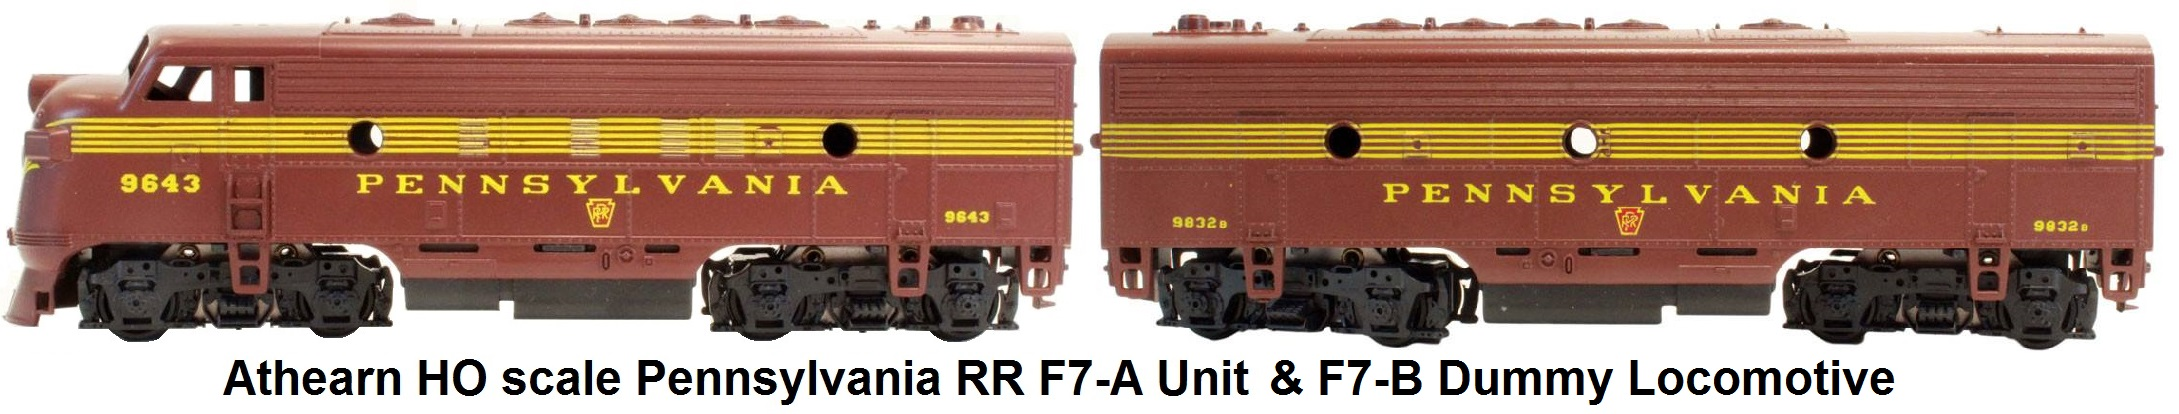 Athearn HO scale Pennsylvania RR F7-A & B units